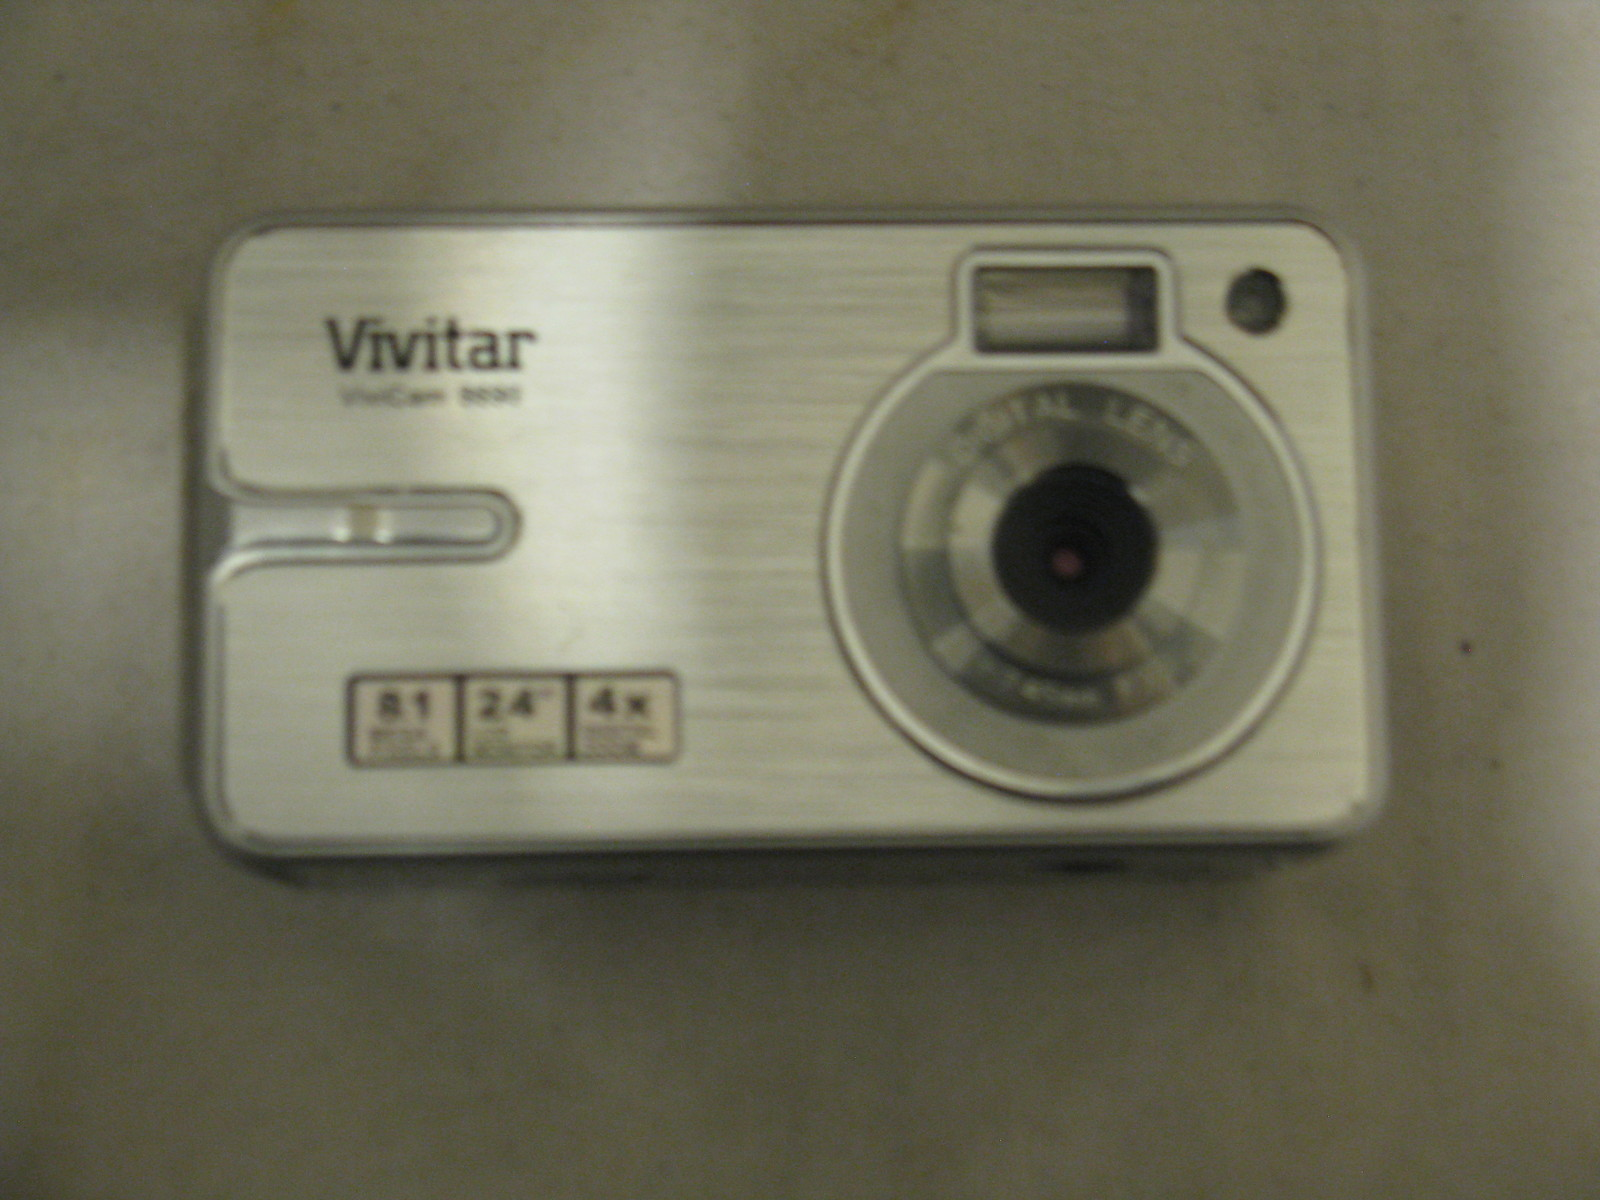 Primary image for Vivitar Vivicam 8690 Silver 8.1 Megapixel Digital Camera